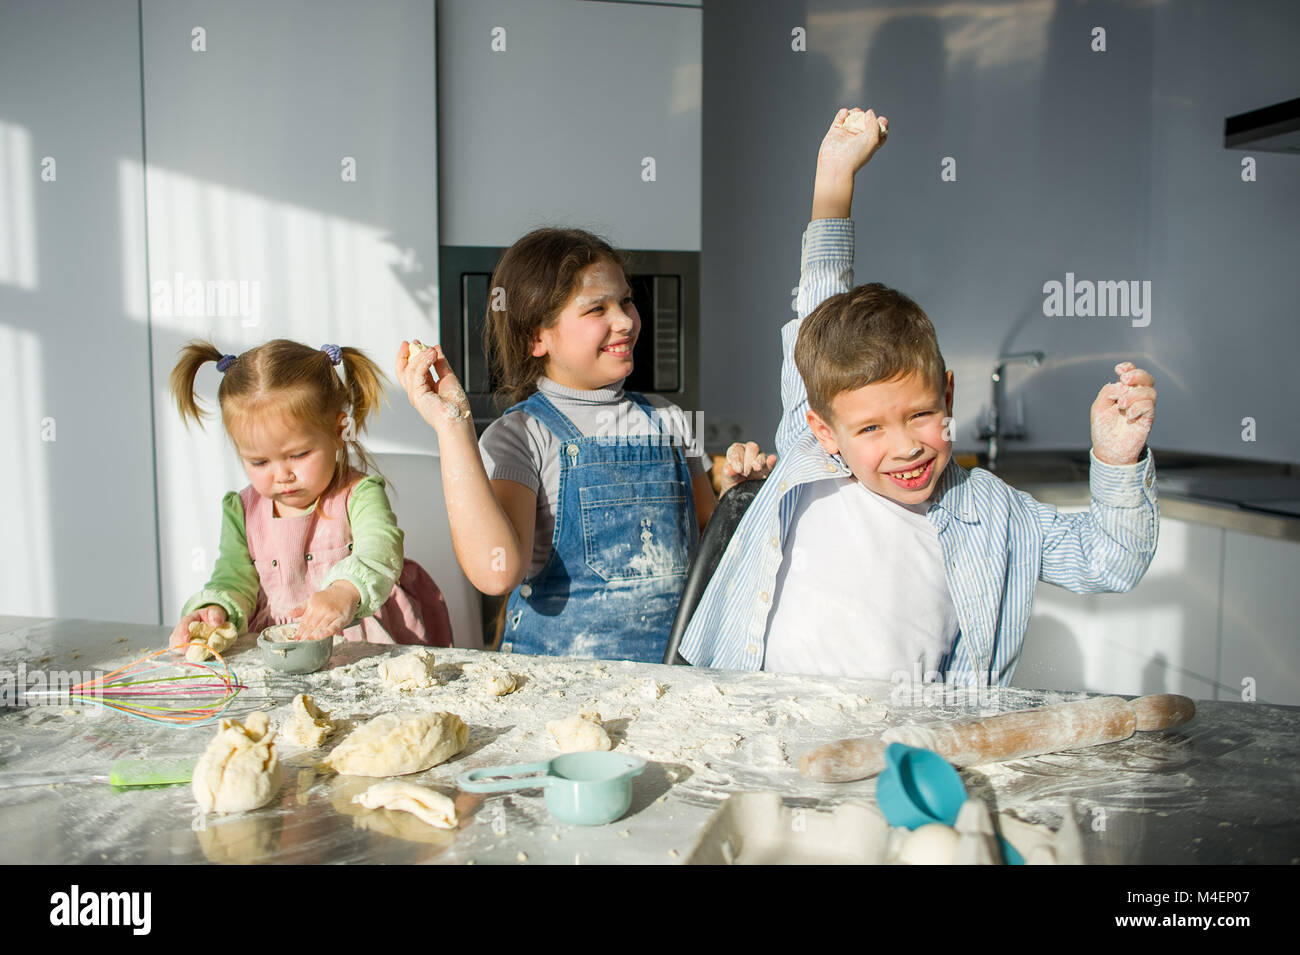 Three children prepare something from the dough. Two sisters and a brother are sitting at the kitchen table. There - Stock Image